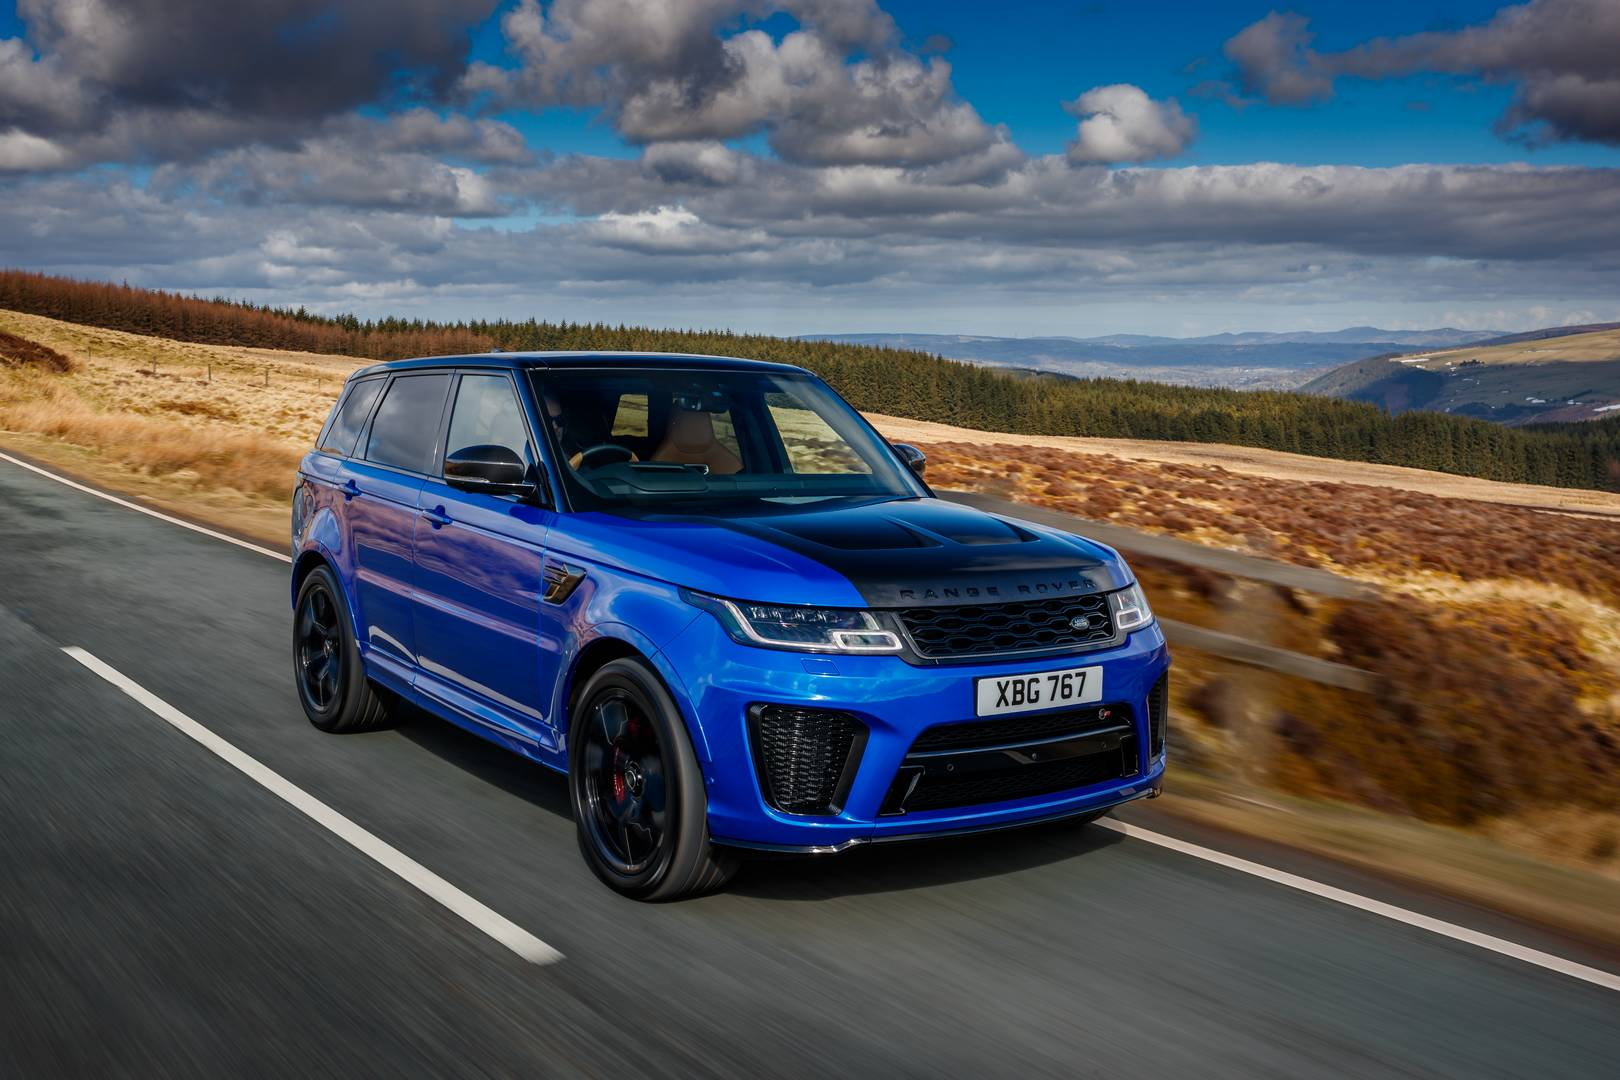 2018 range rover sport svr review neoadviser. Black Bedroom Furniture Sets. Home Design Ideas